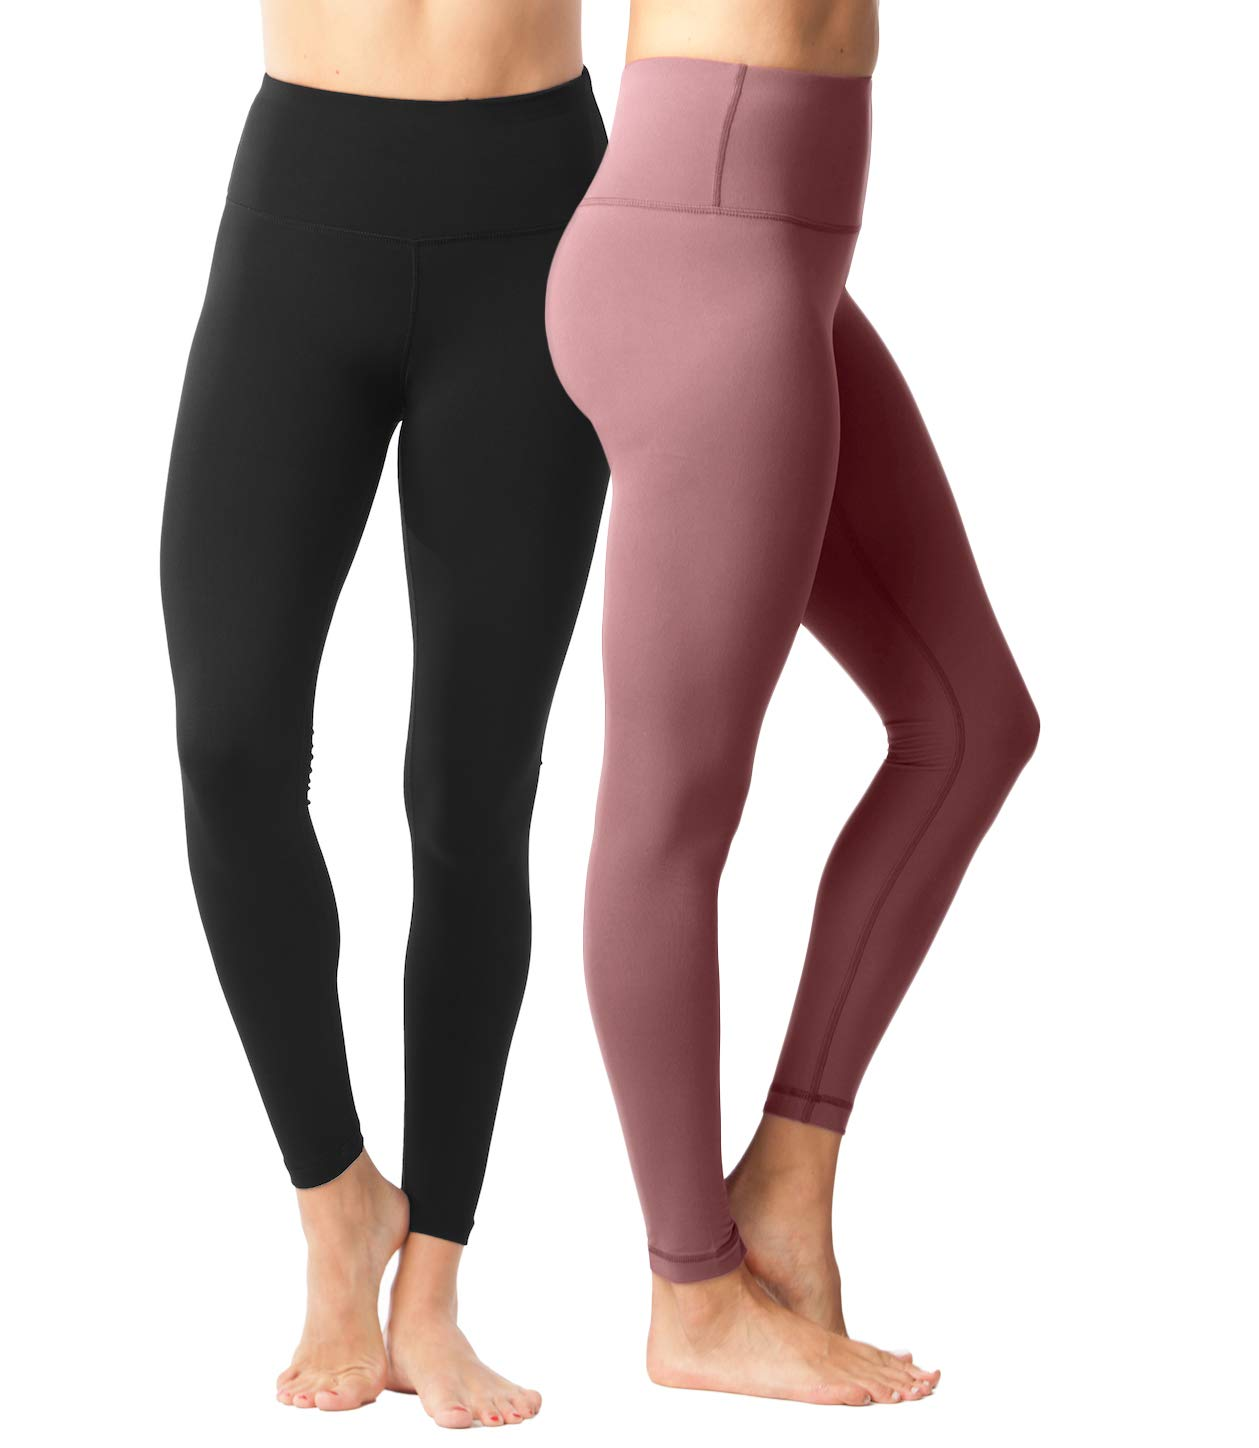 Yogalicious High Waist Ultra Soft Lightweight Leggings - High Rise Yoga Pants - 2 Pack - Black and Moonlite Mauve - XS